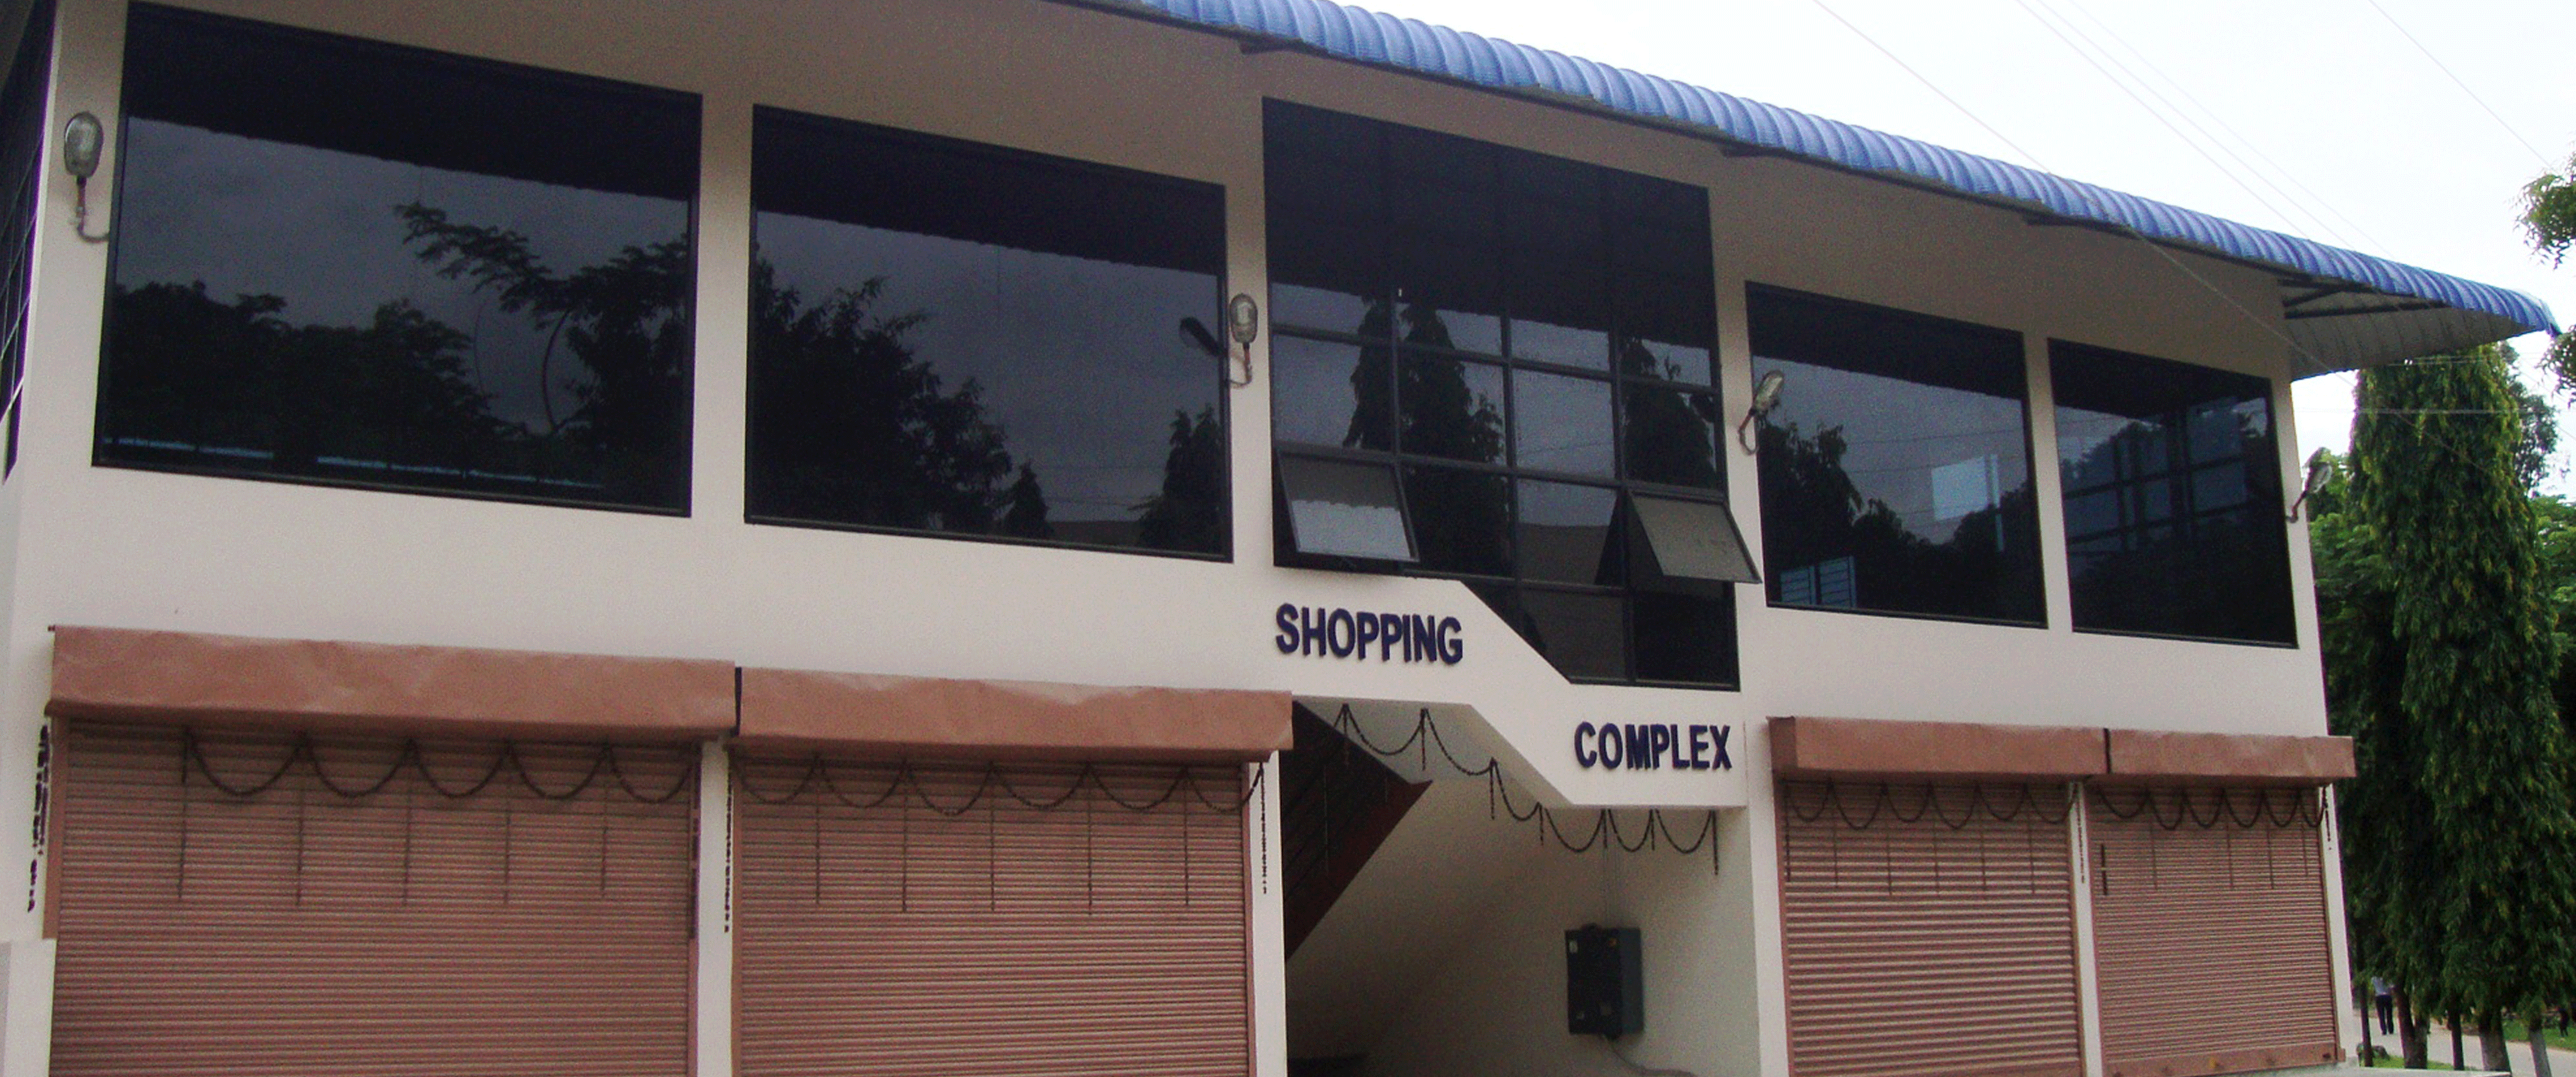 shoping Complex